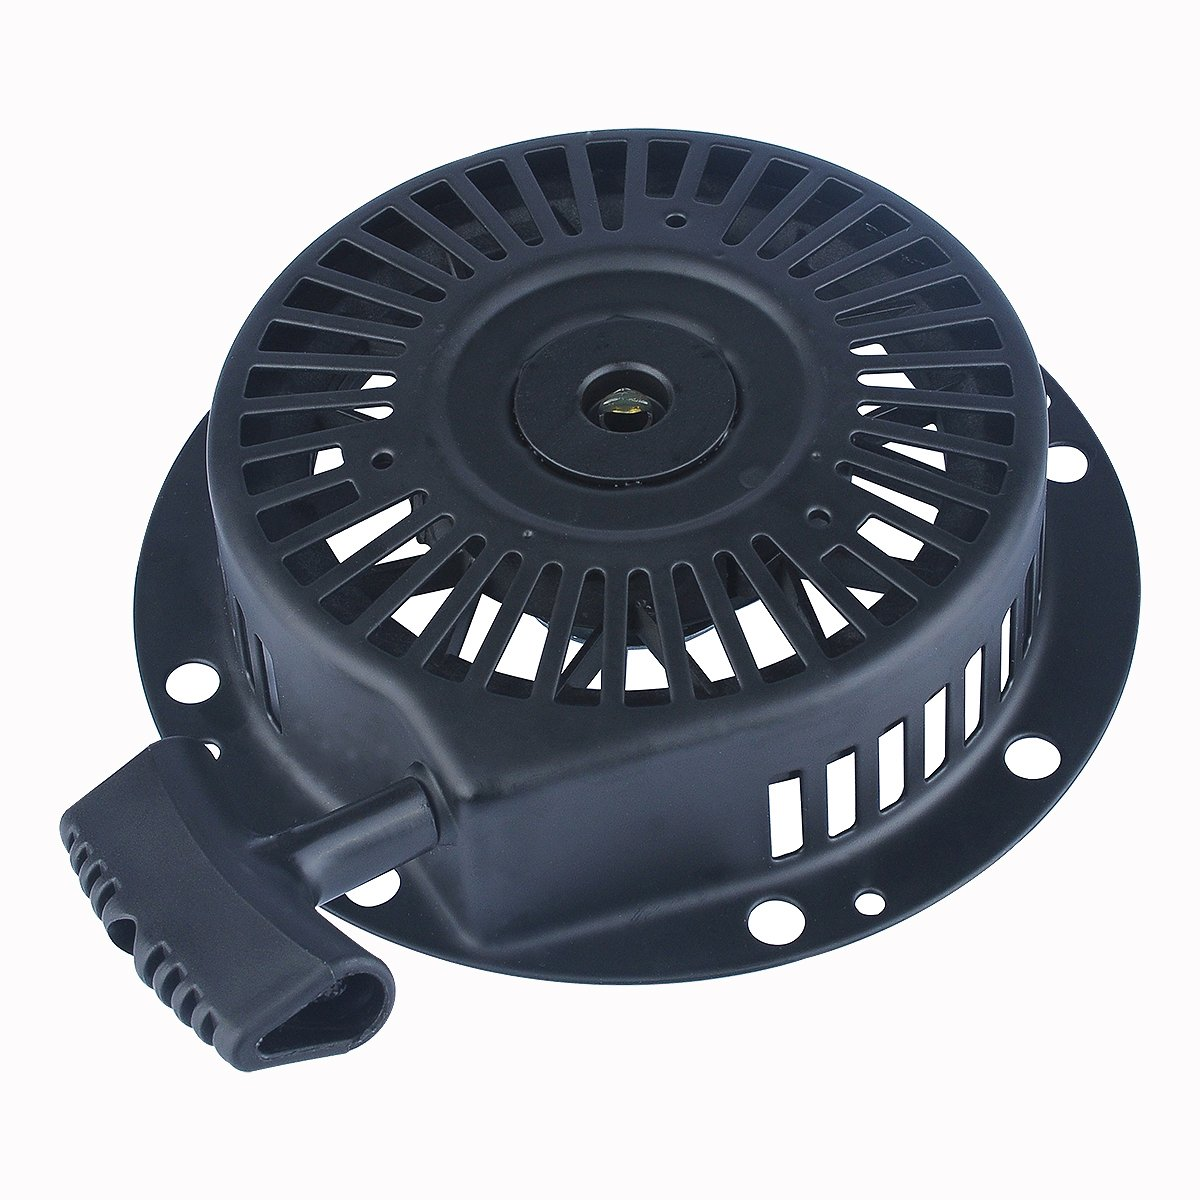 Milttor Recoil Pull Starter for Tecumseh 590746 OHH50 OHH65 OHH60 HM80 HM90  HM100 Lawn Mower